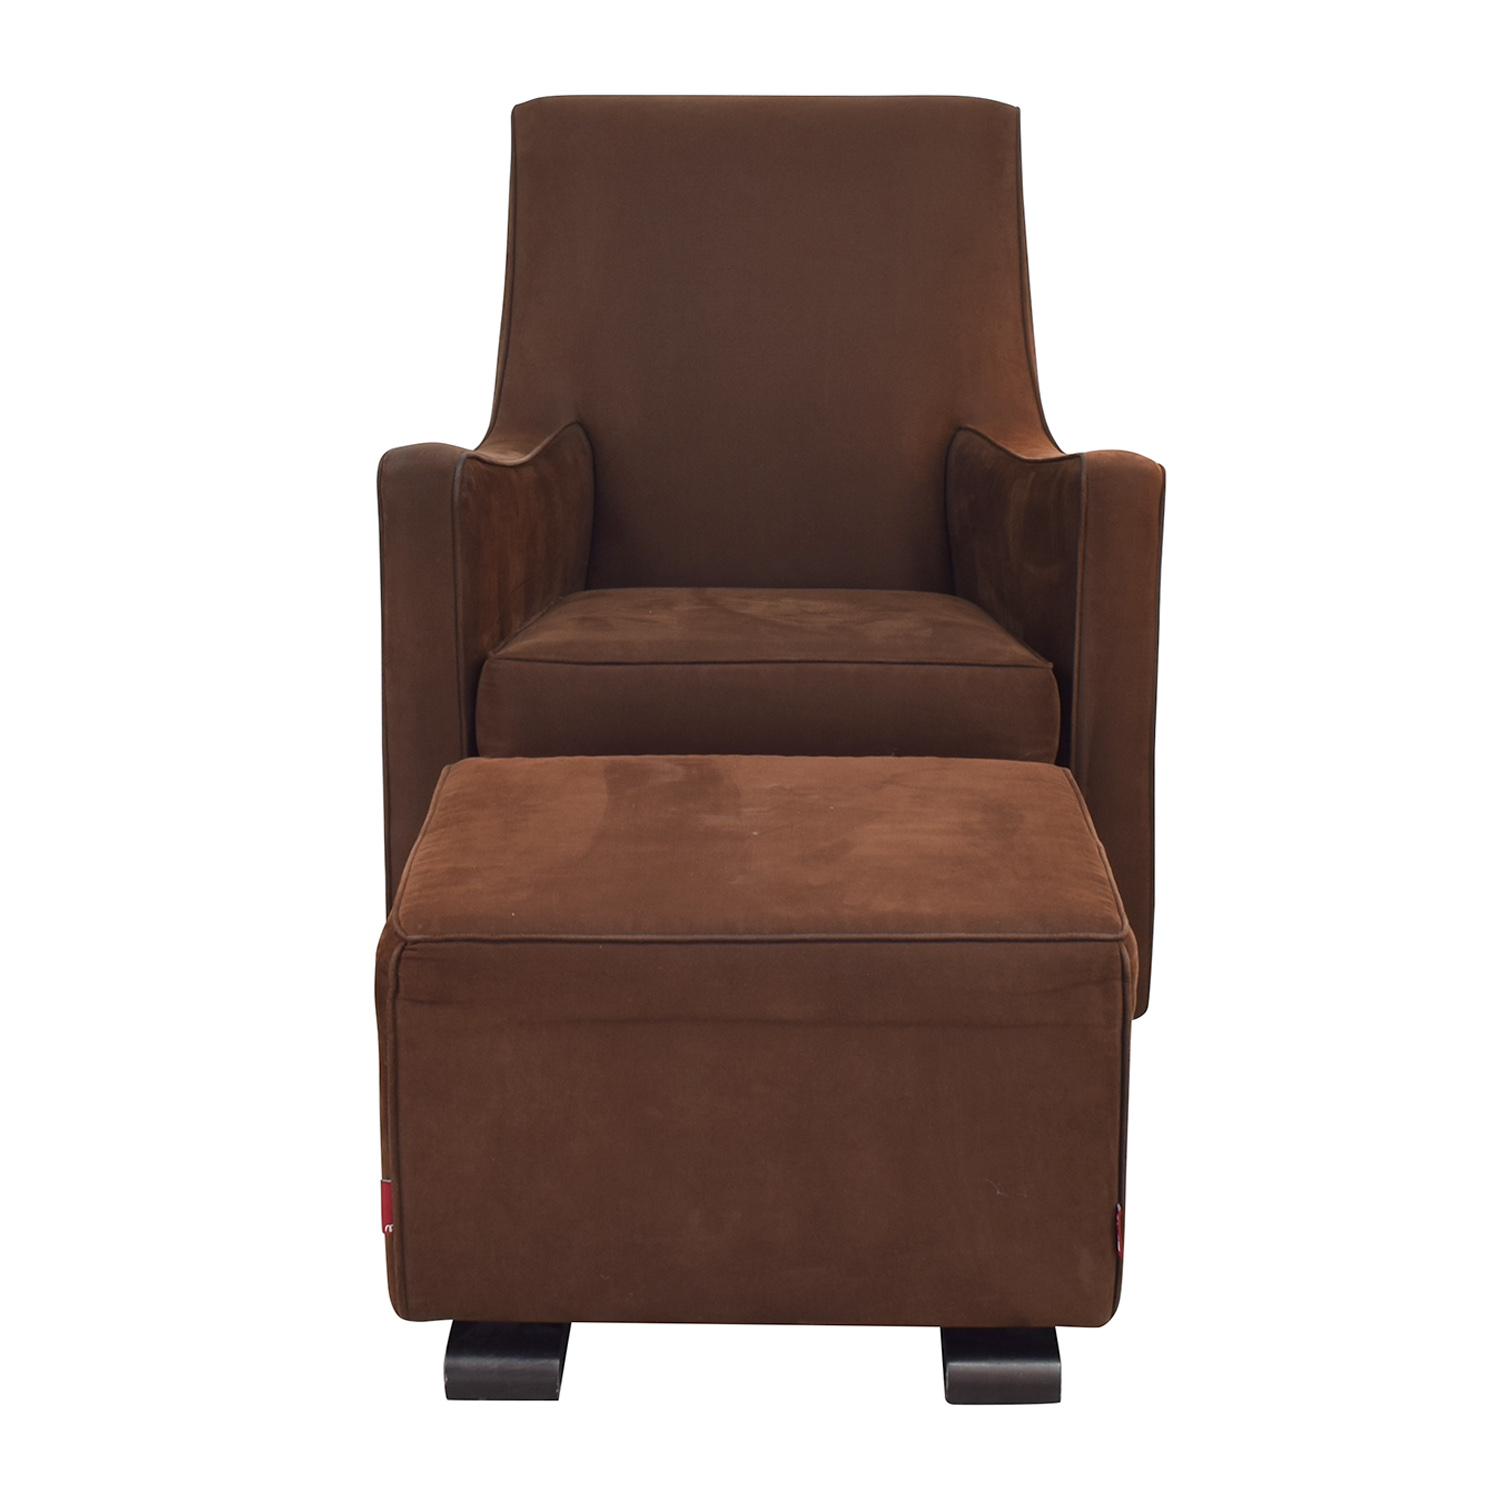 Monte Design Monte Arm Chair and Ottoman discount